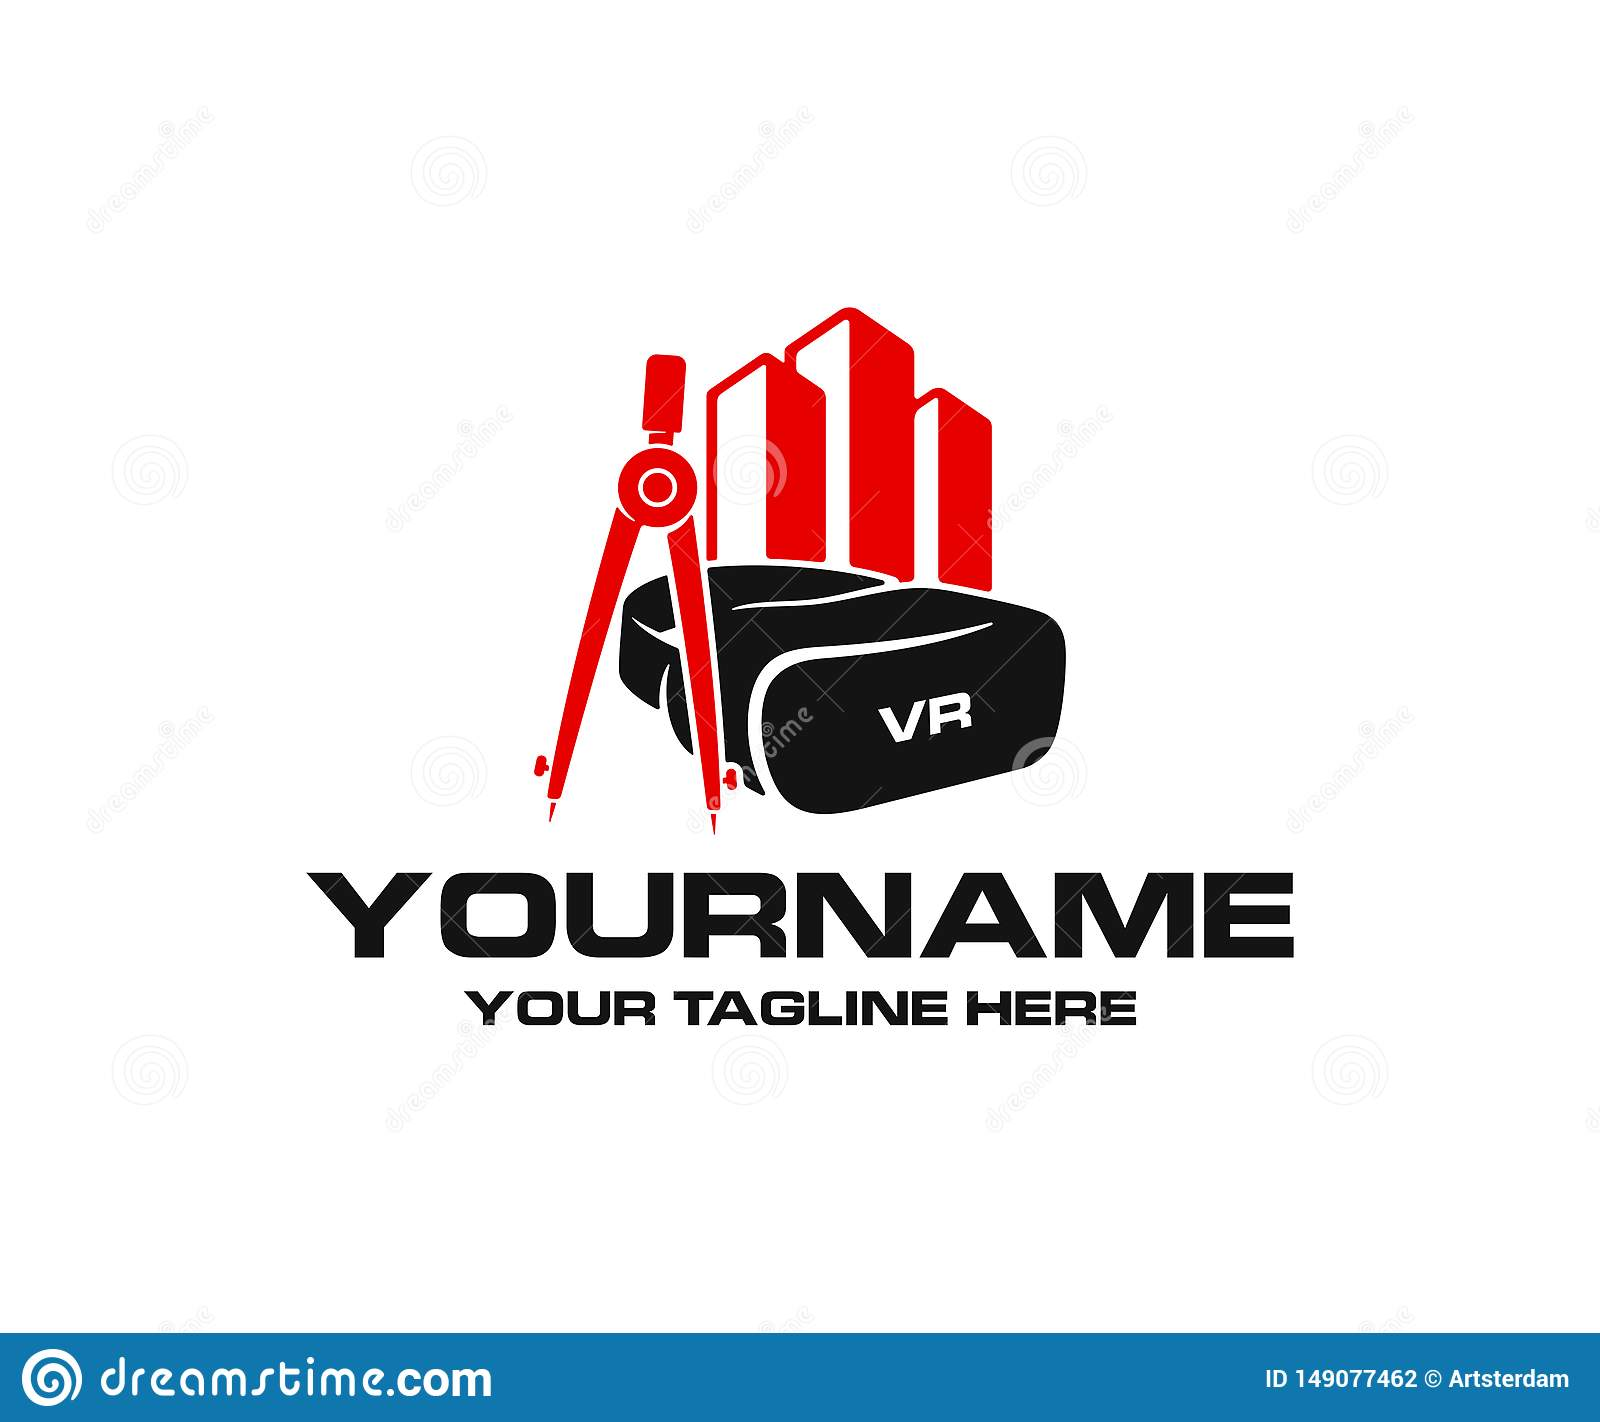 Virtual reality headset and glasses, drawing compass and property or real estate, logo design. Construction and augmented reality,